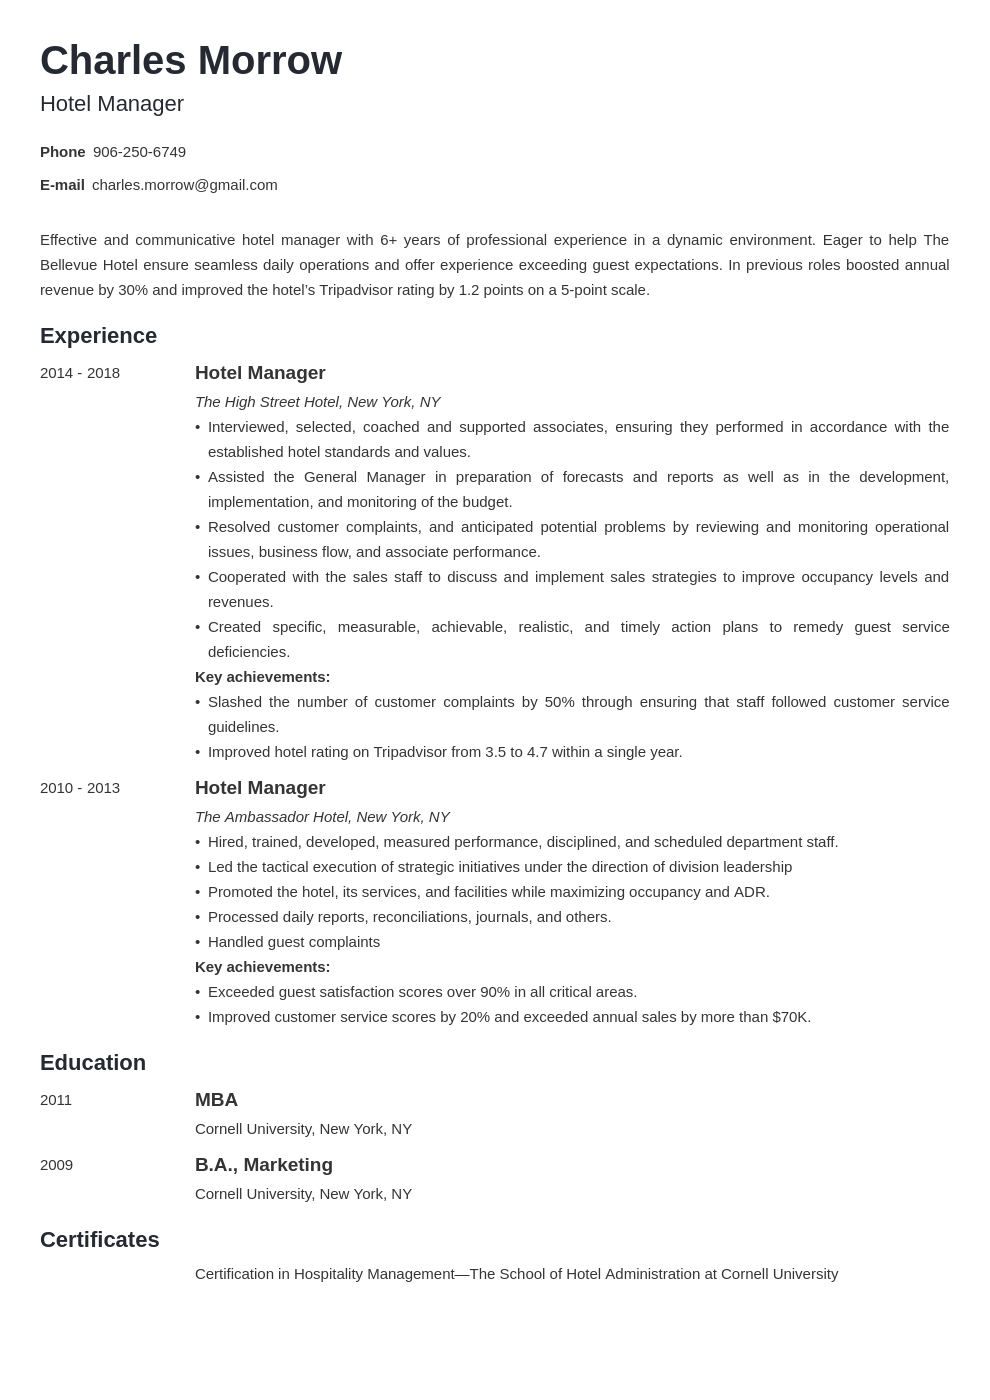 Hotel Manager Resume Sample Writing Guide 20 Tips